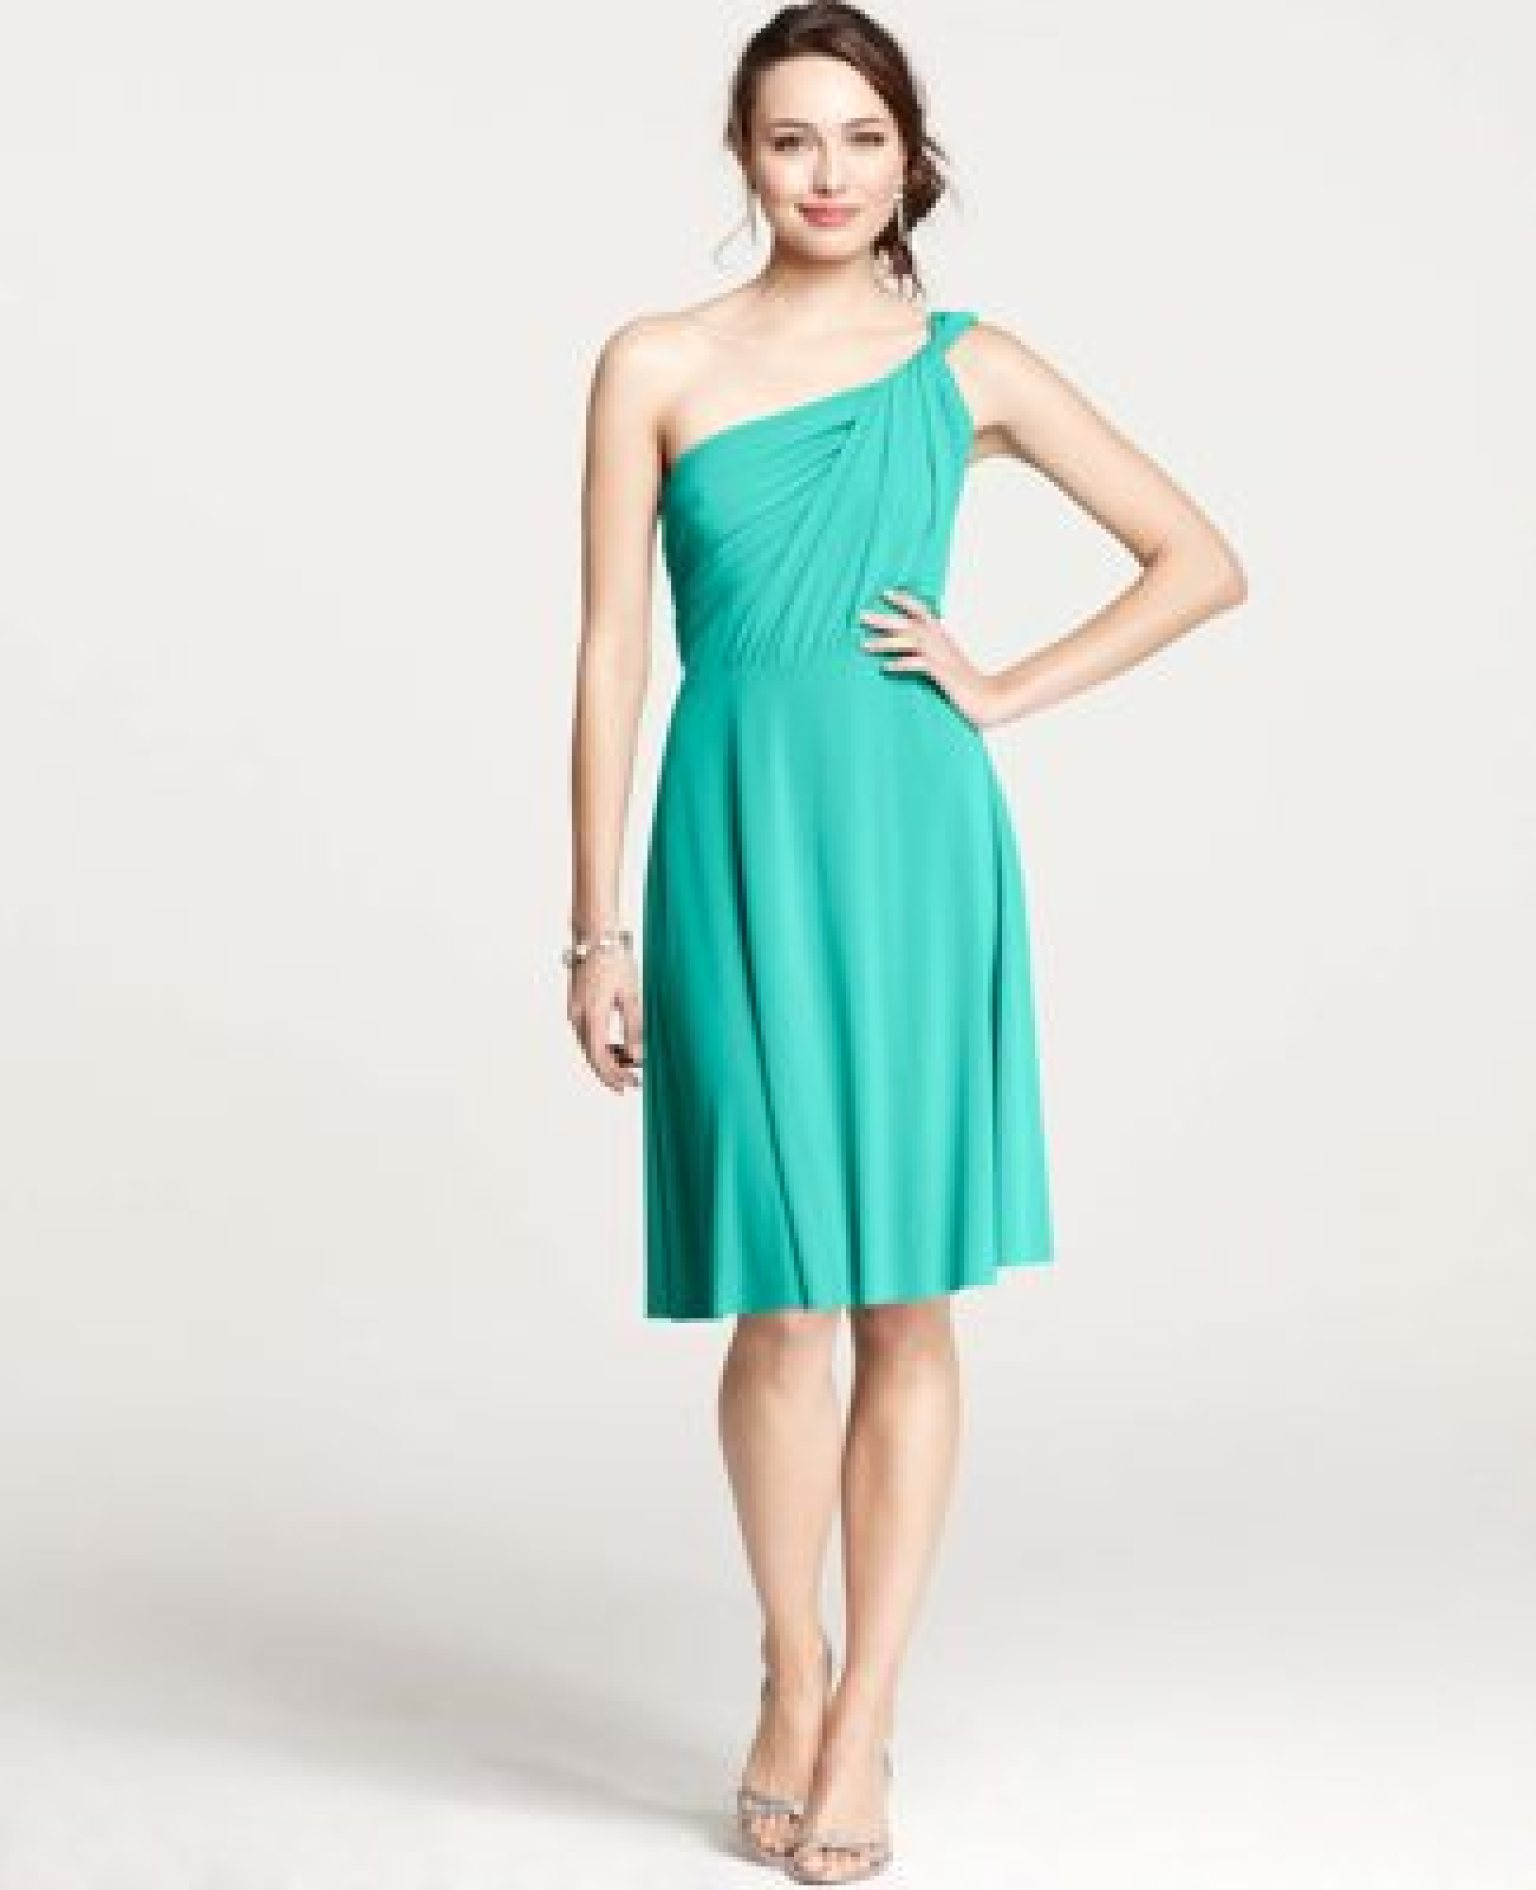 Wedding guest dresses for summer affairs photos huffpost for Dresses to wear at weddings as a guest